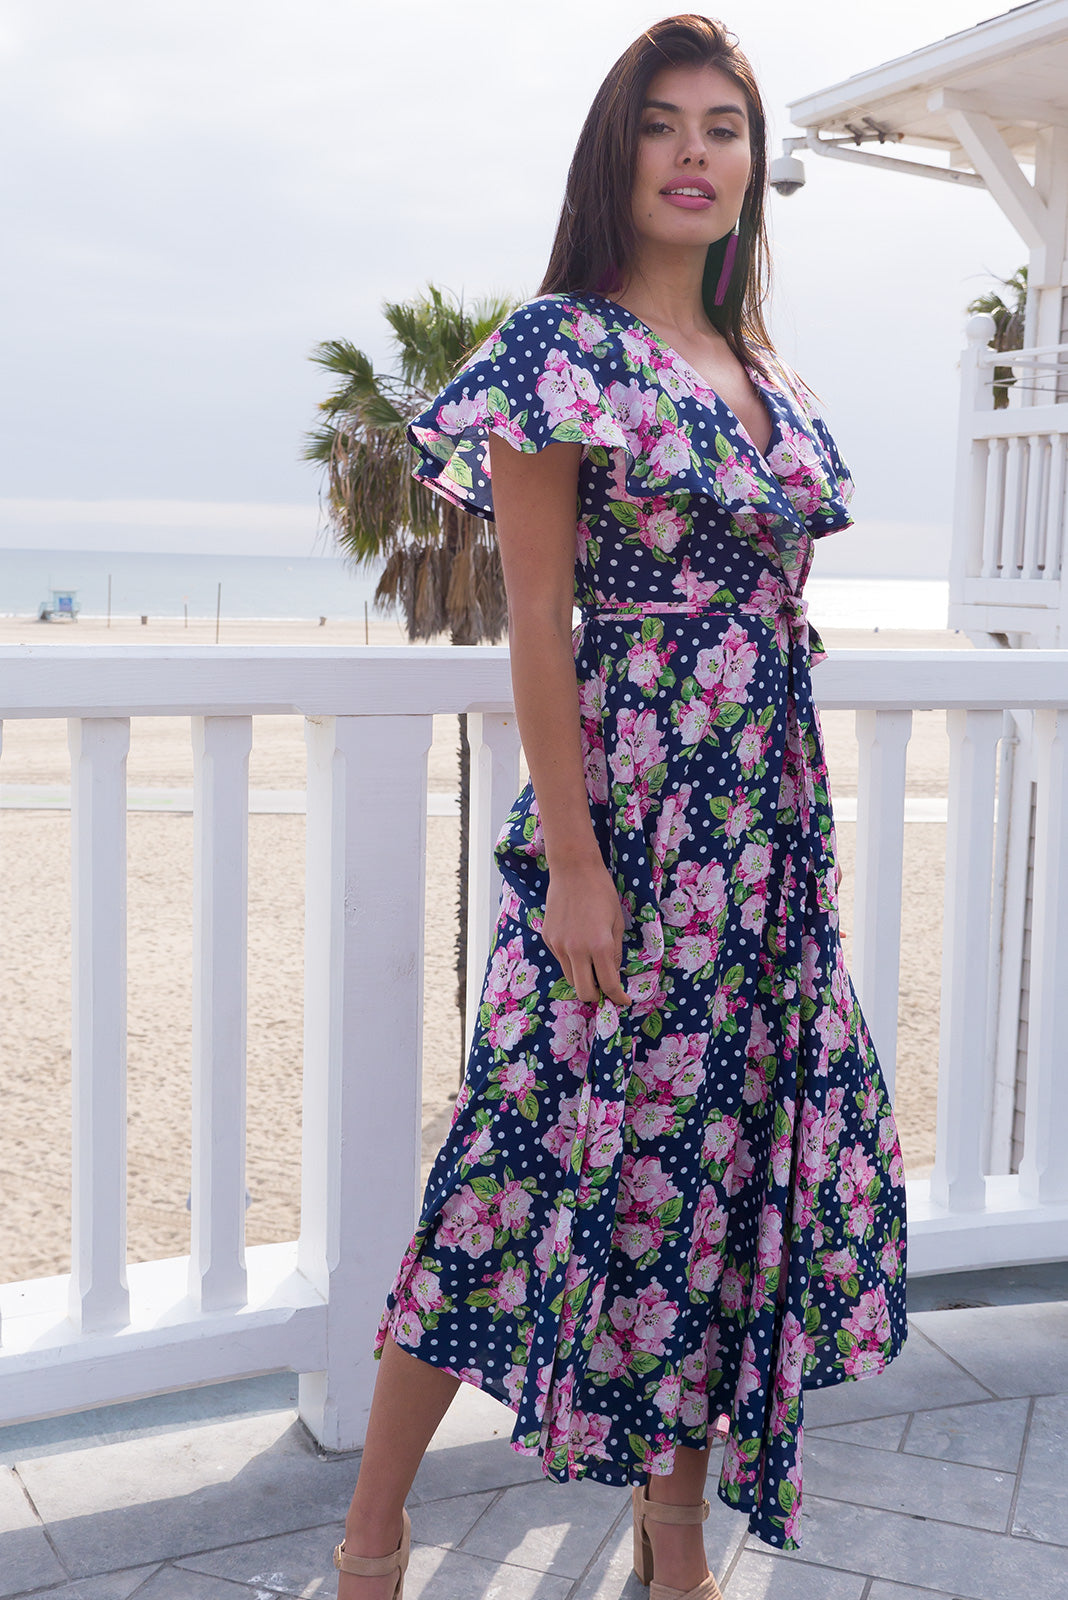 Rita Rio Sweet Spot Maxi Wrap Dress with a full frill around the neck and sleeve in soft navy and white spot with a floral print on woven rayon